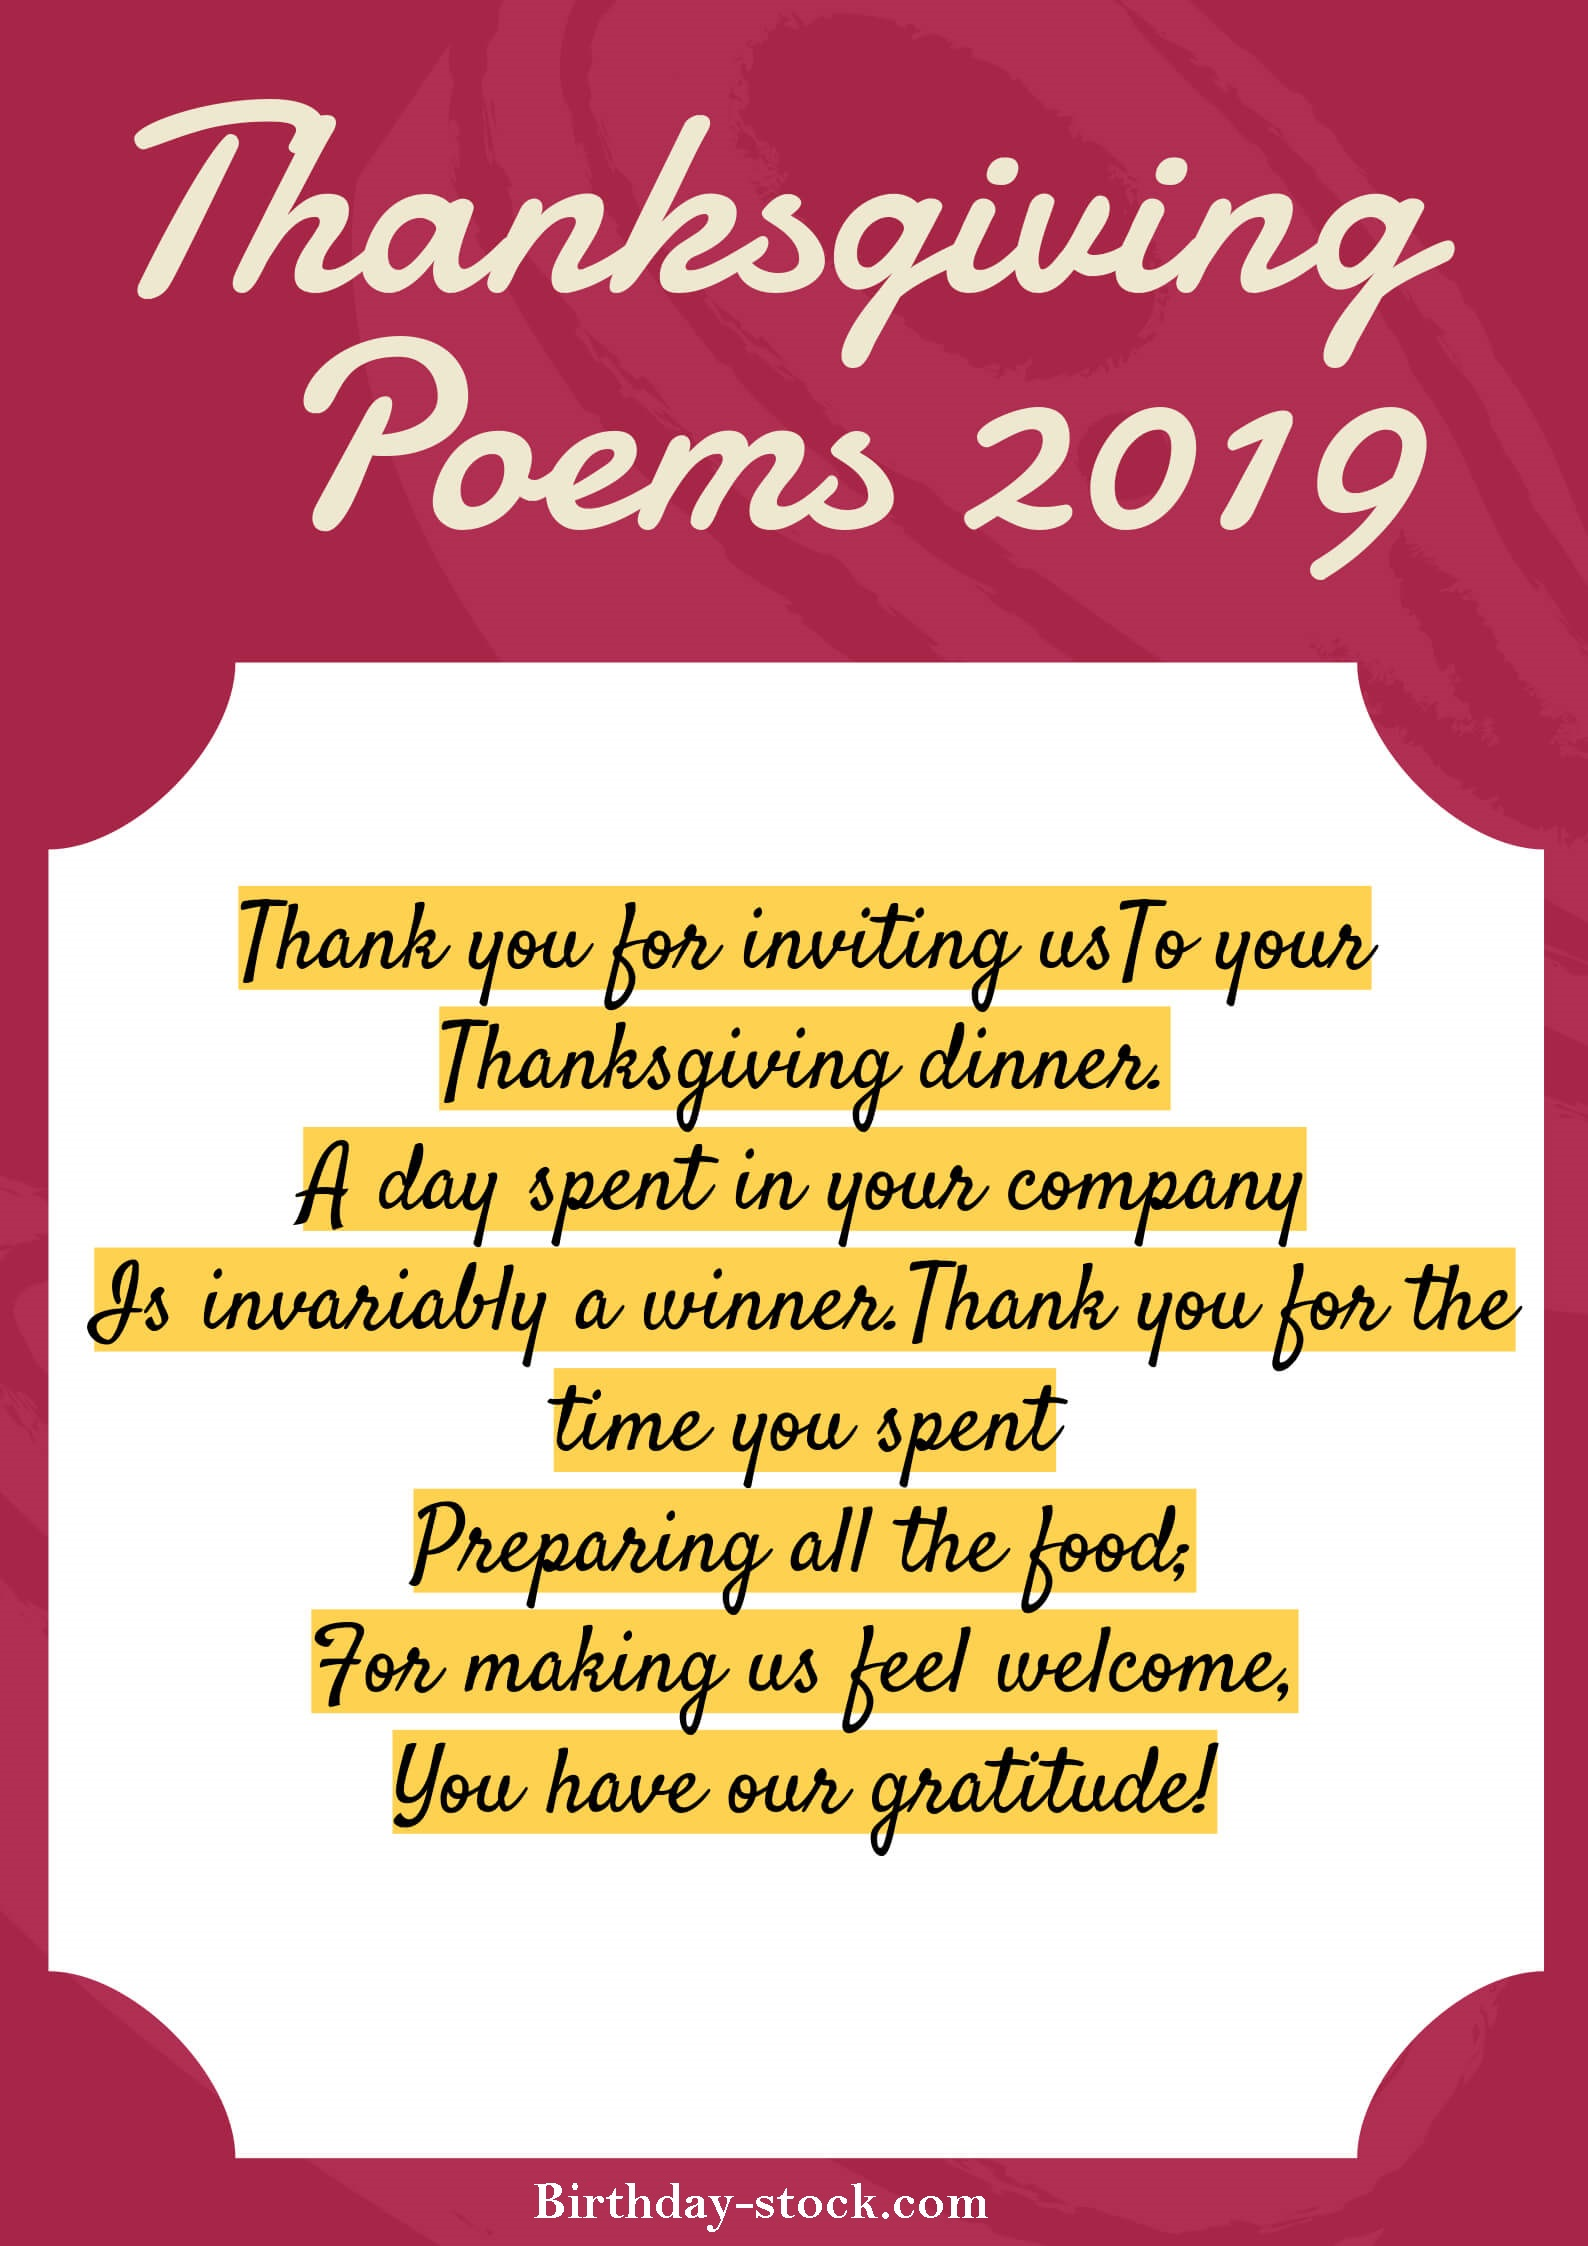 Best Happy Thanksgiving Poems 2019 For Family and Friends – Thanksgiving Day Poems 2019